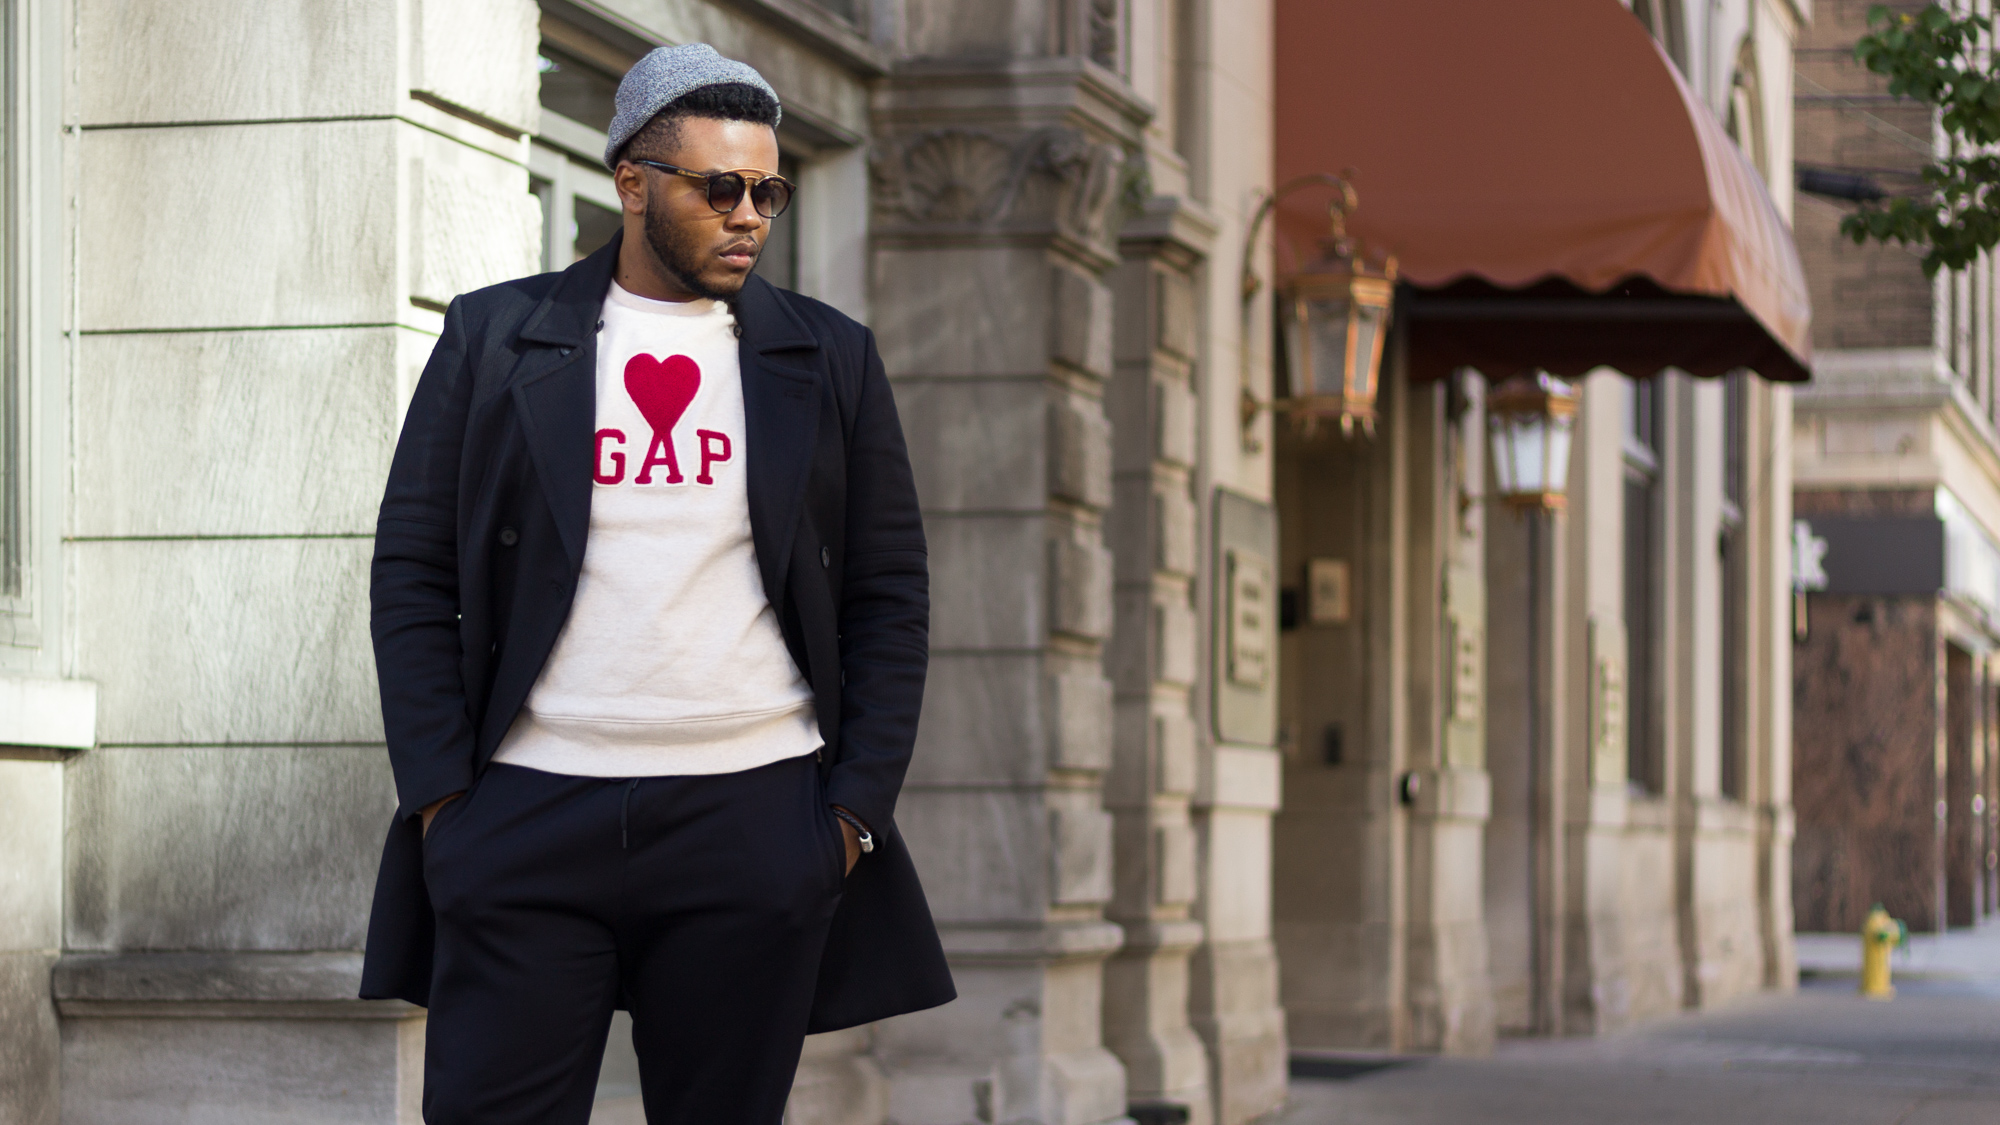 GQ x Gap 2017 Collaboration: Parisian Vibes with AMI